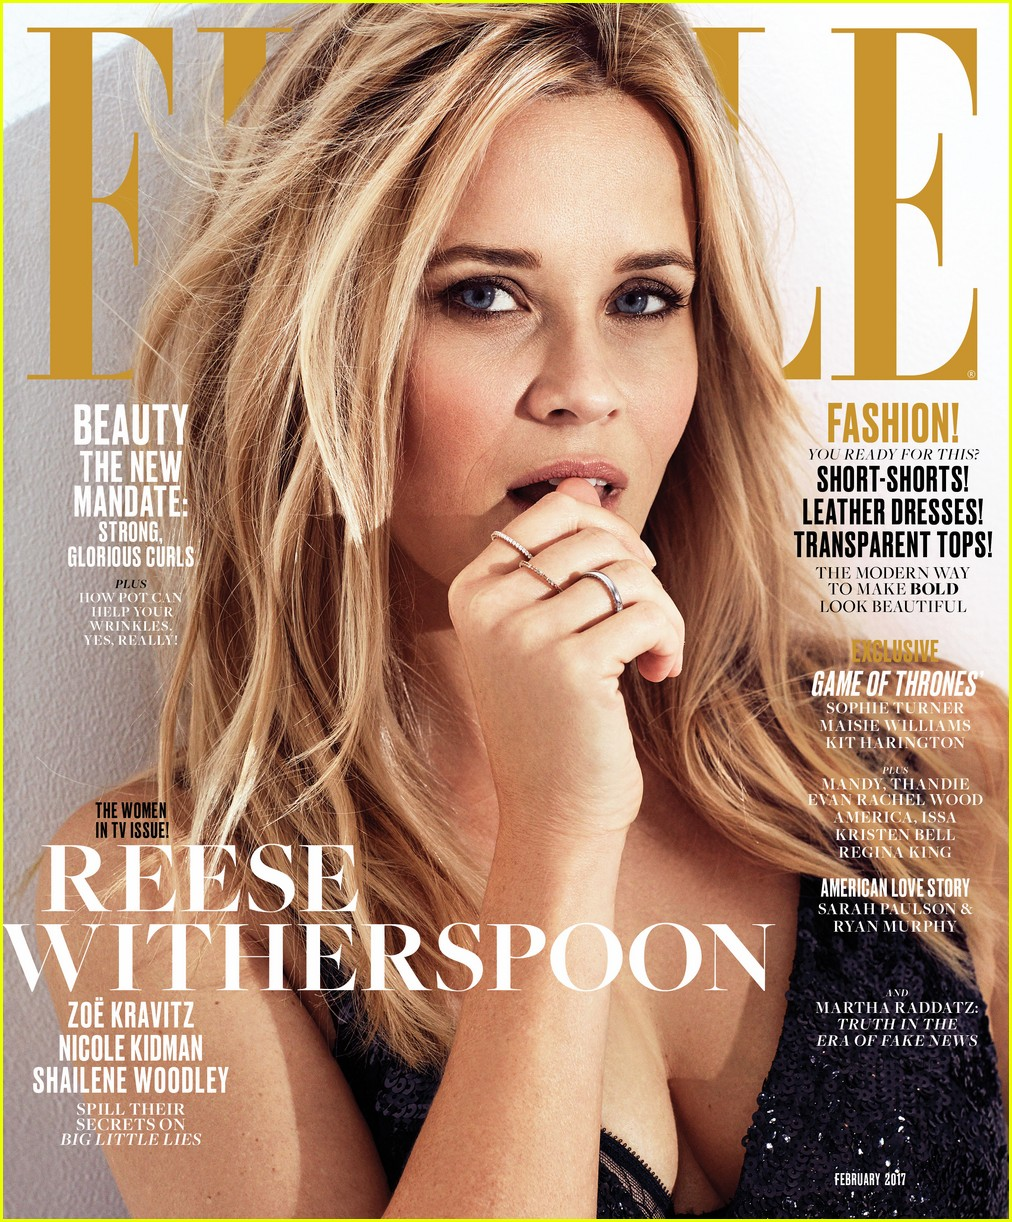 little big lies elle magazine 023841120